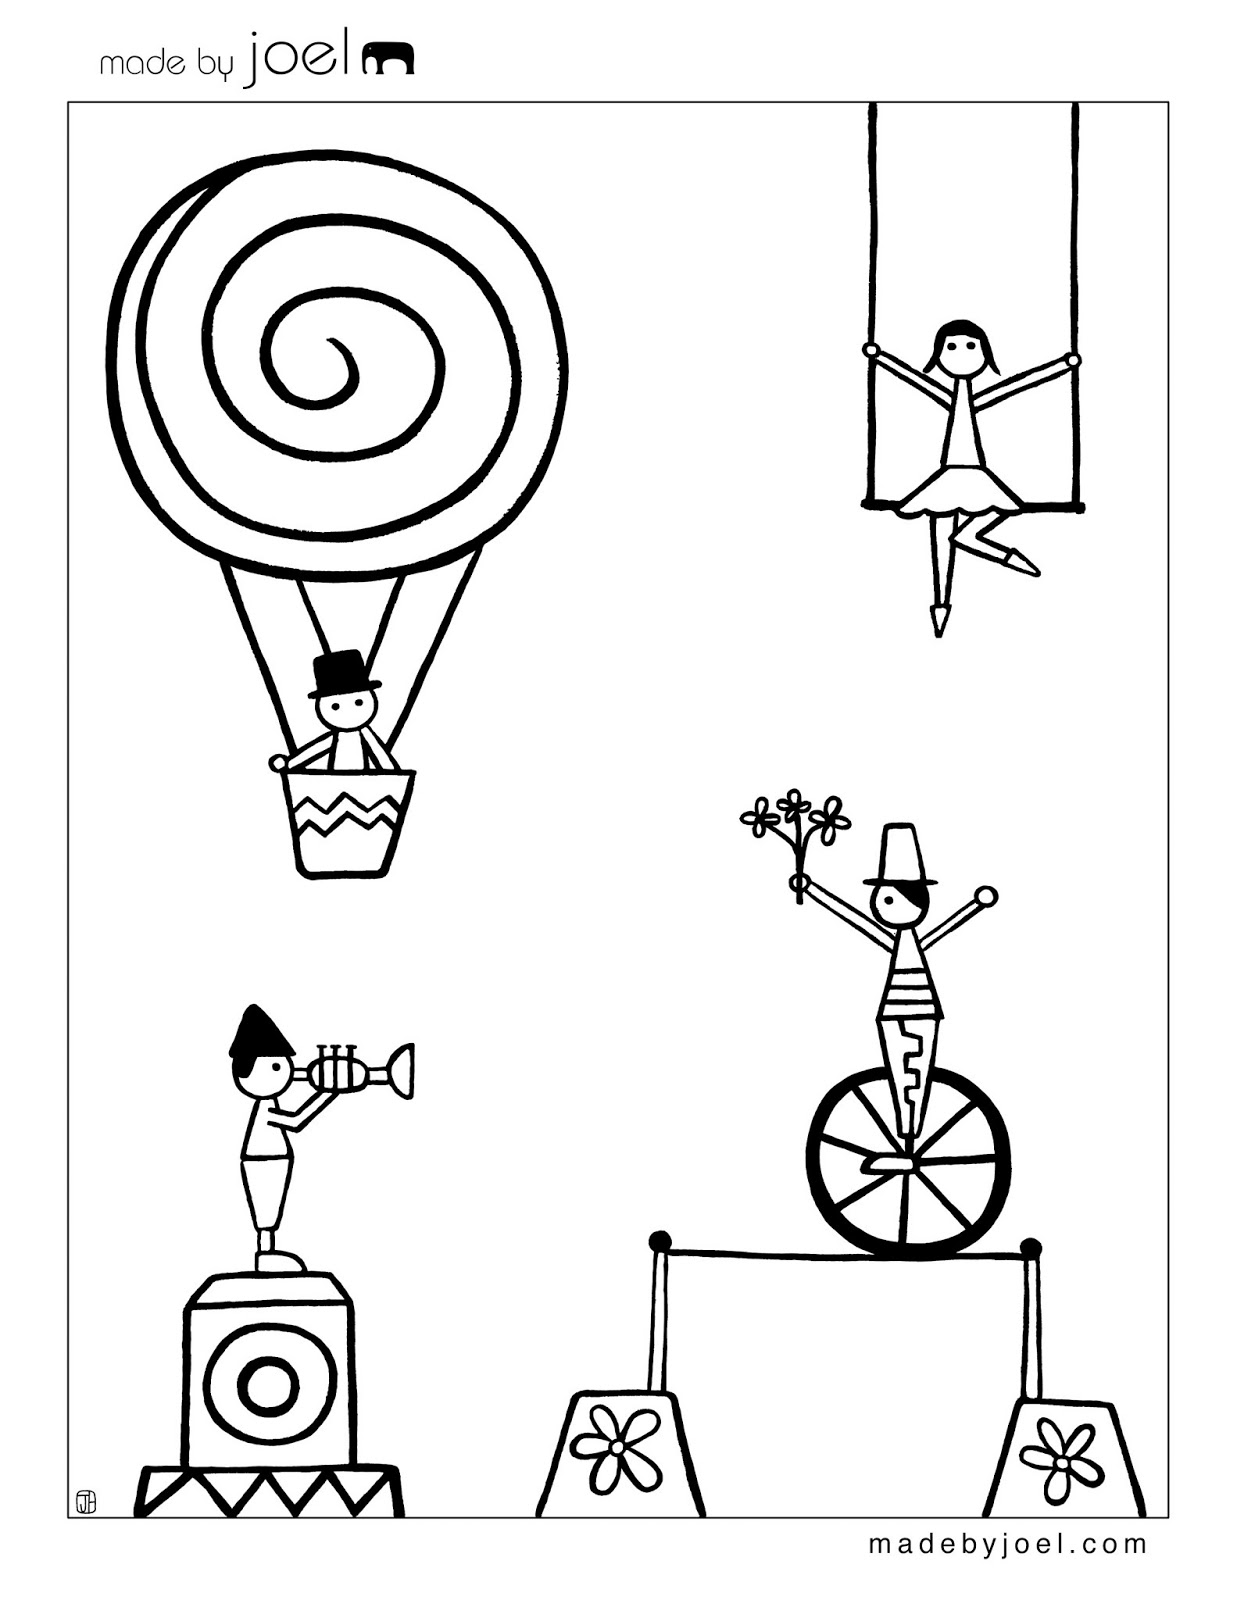 Be different act normal free printable circus coloring for Printable circus coloring pages